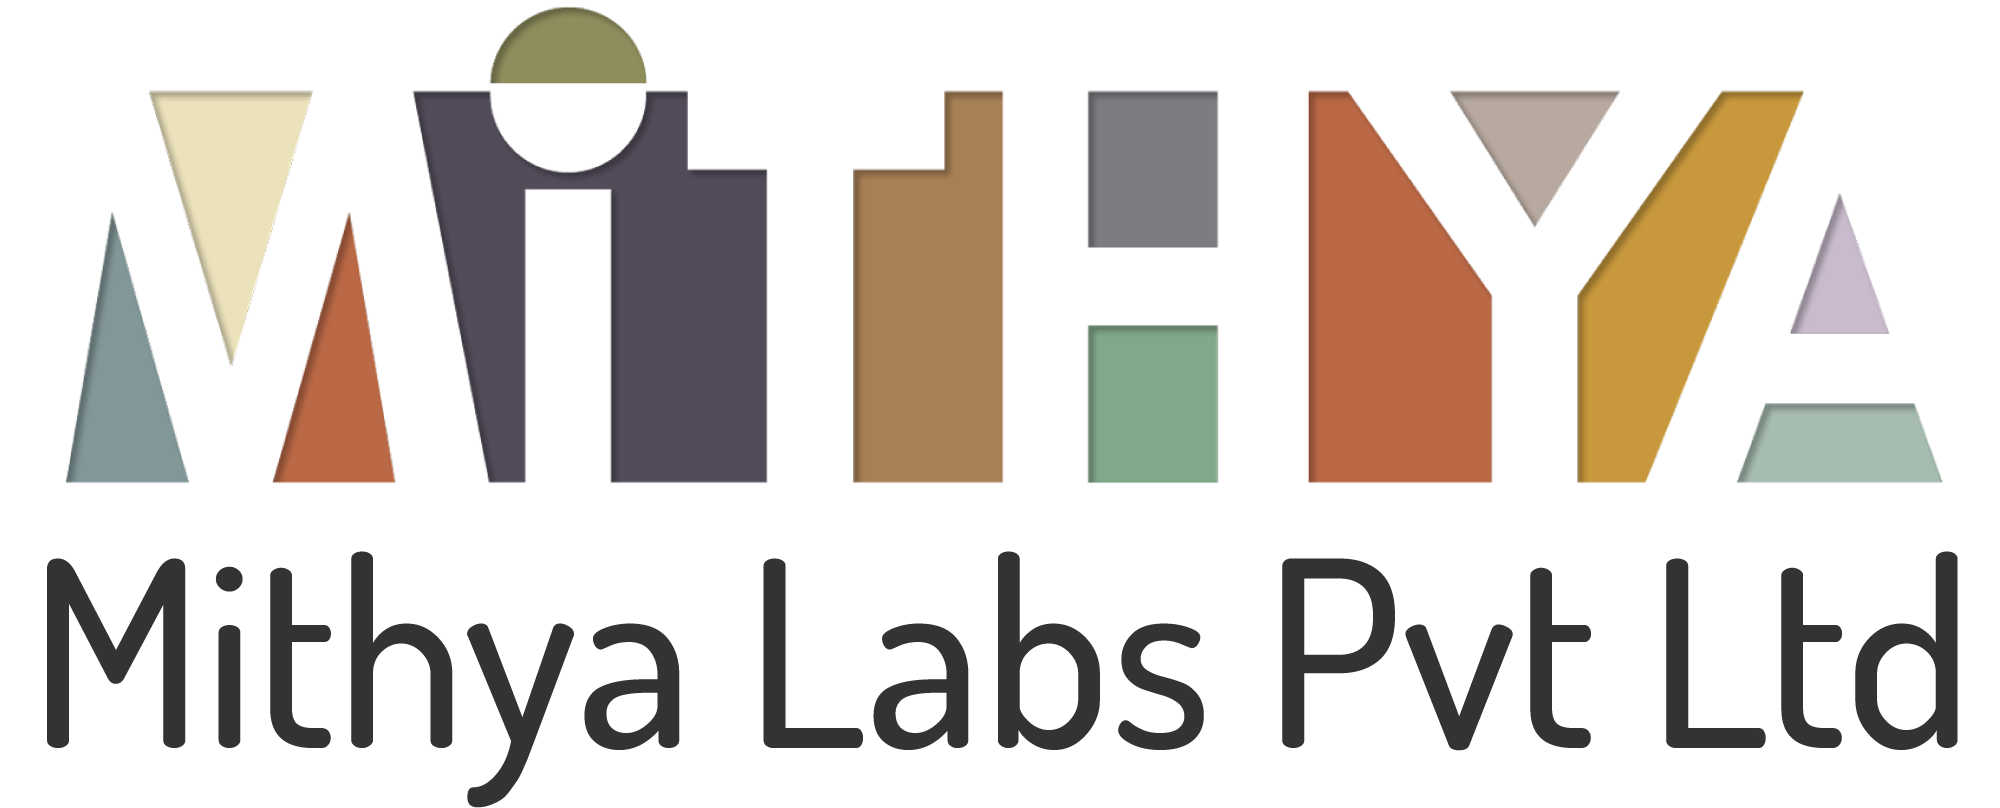 Mithya Labs Pvt Ltd